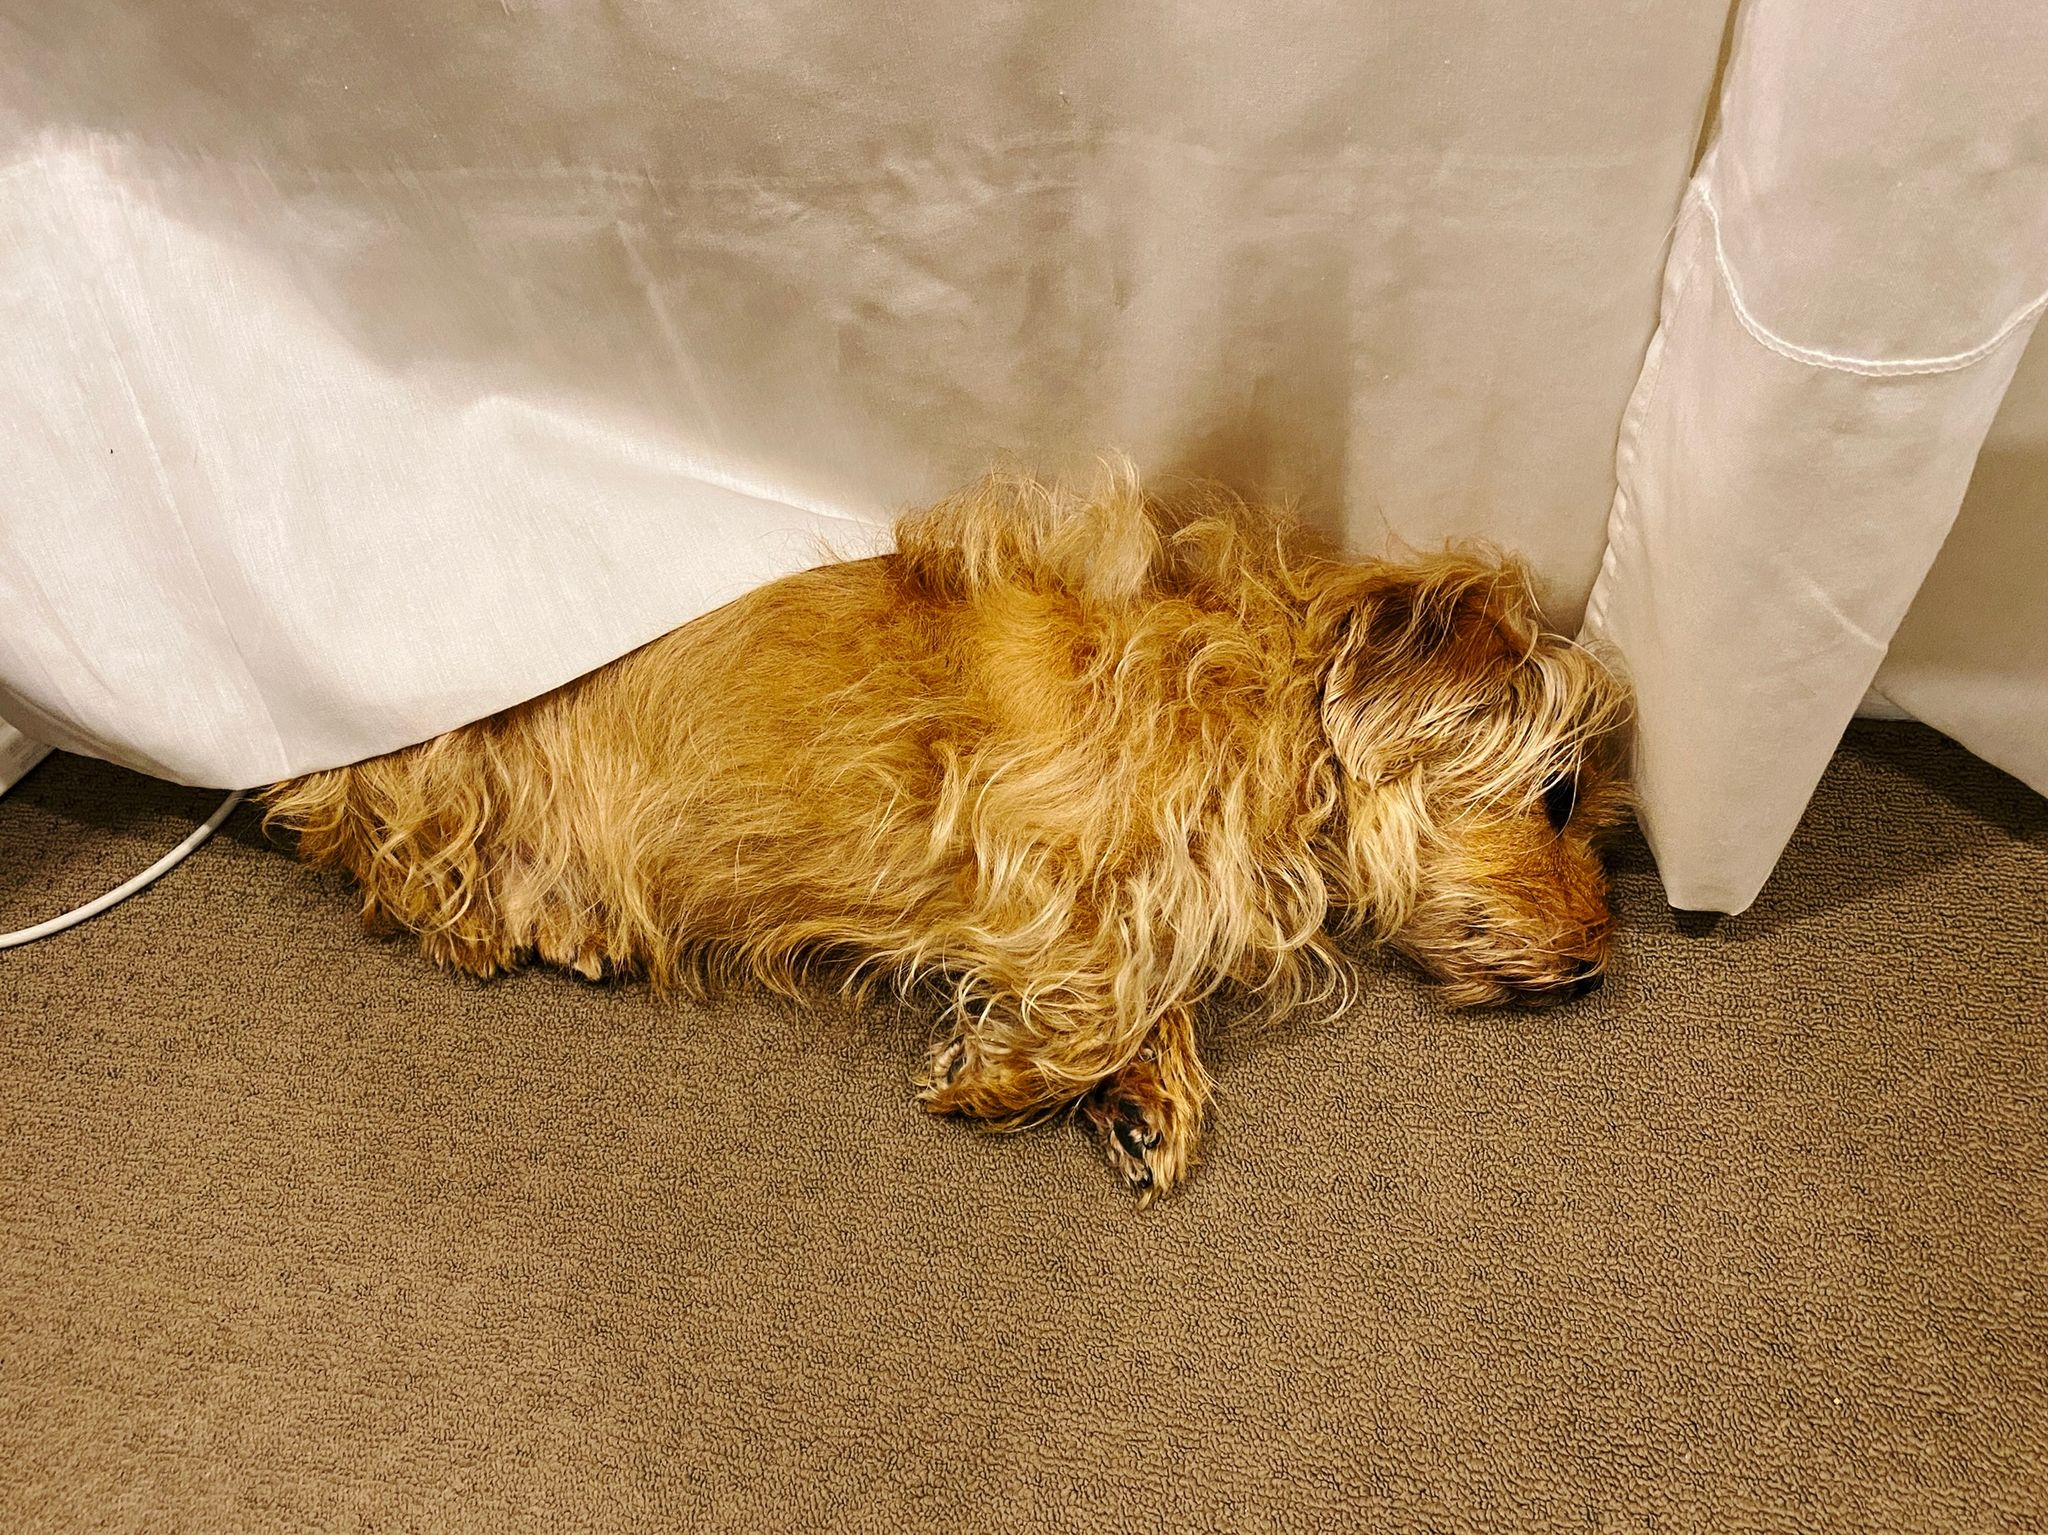 A photo of a small scruffy blonde dog lying on his side with his back half under a sheer white curtain next to the wall.